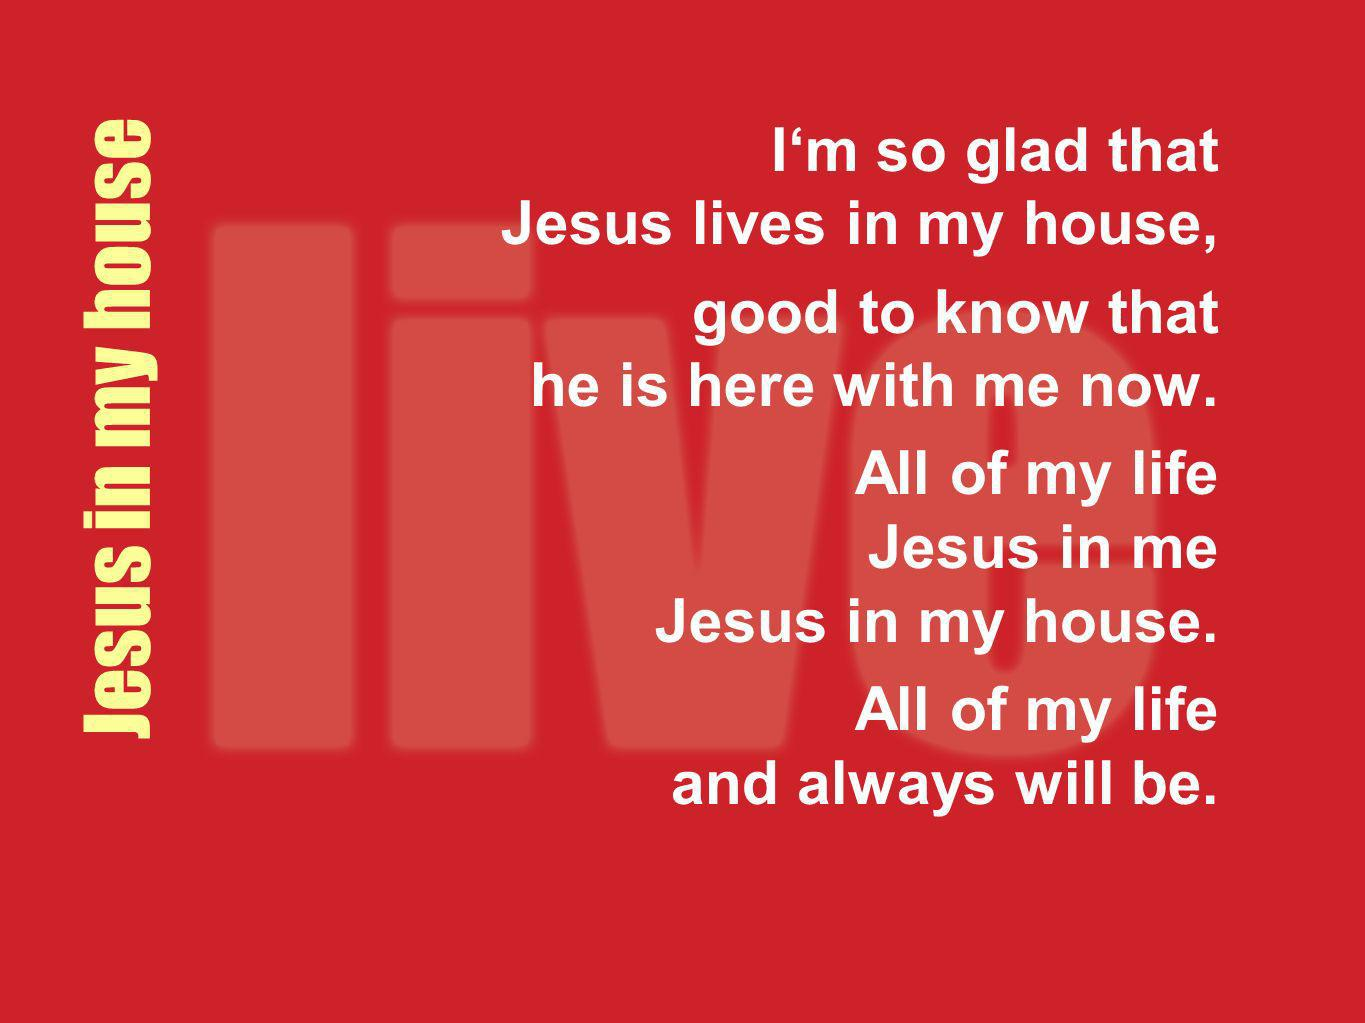 Jesus in my house I'm so glad that Jesus lives in my house,